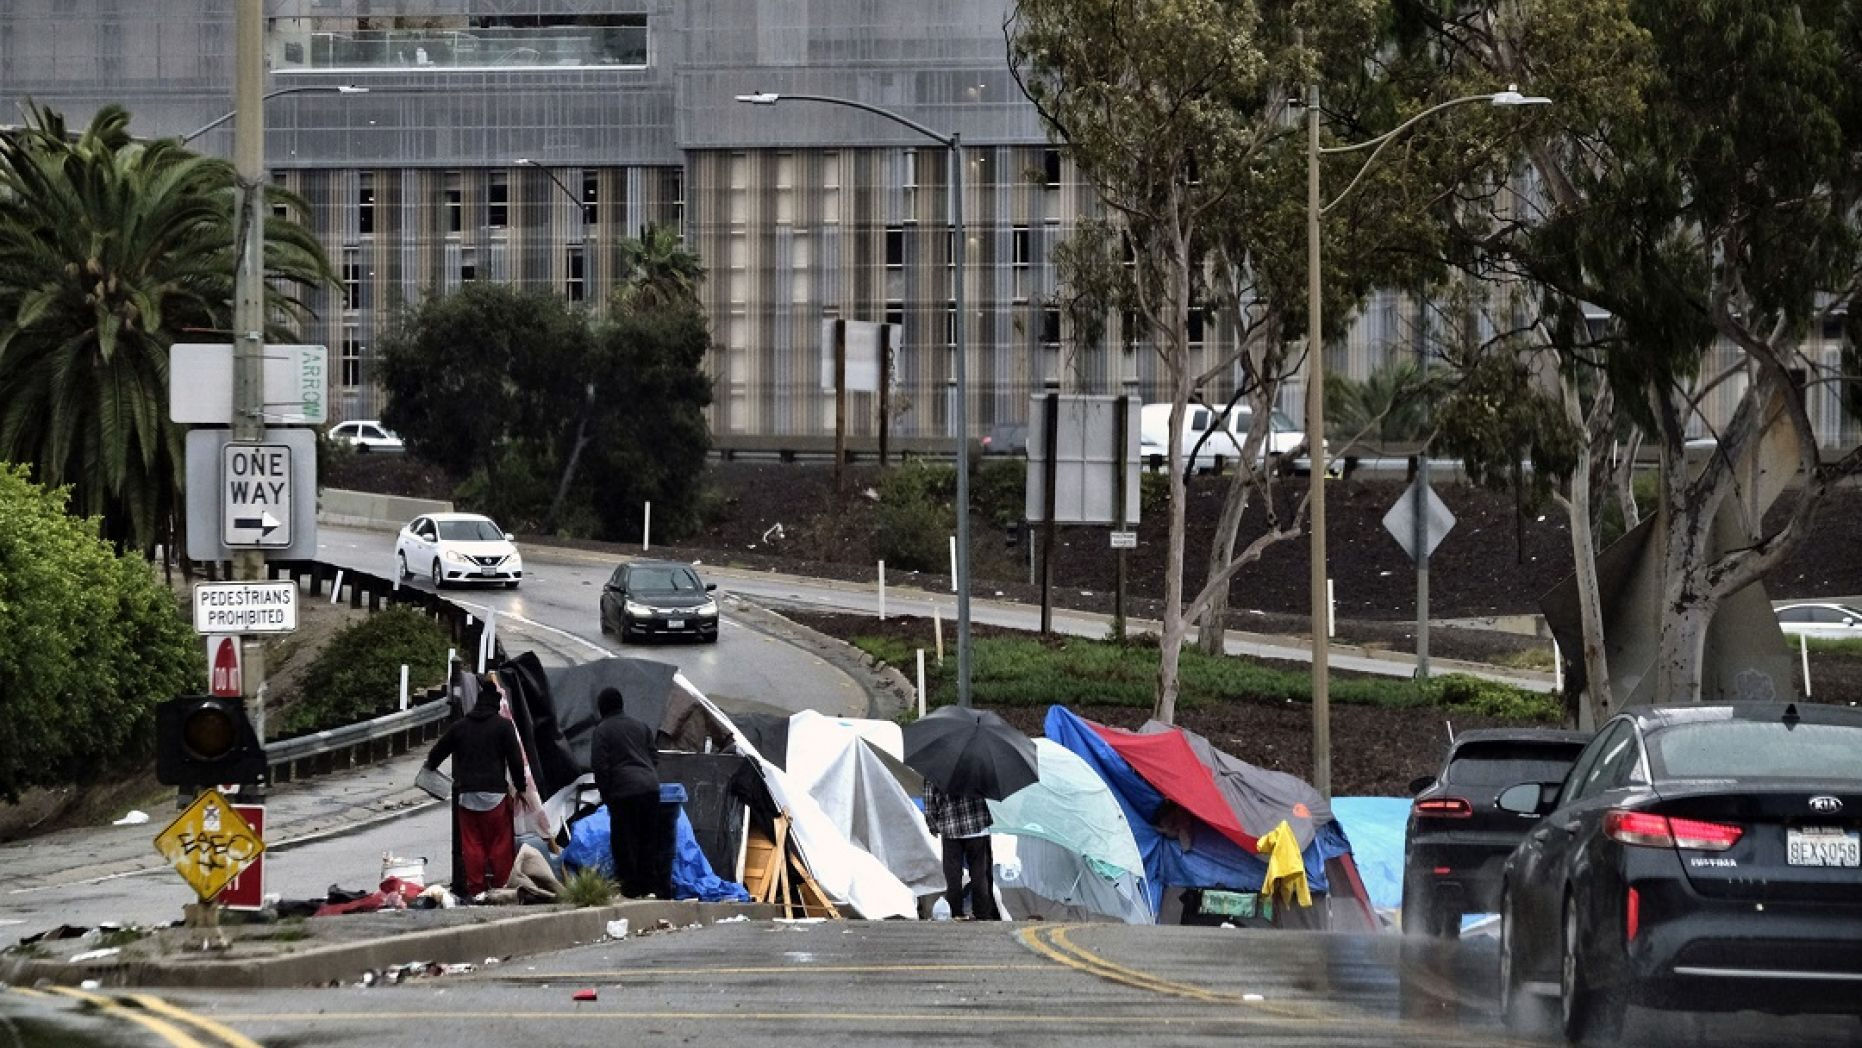 California's epidemic protection services have room for improvement